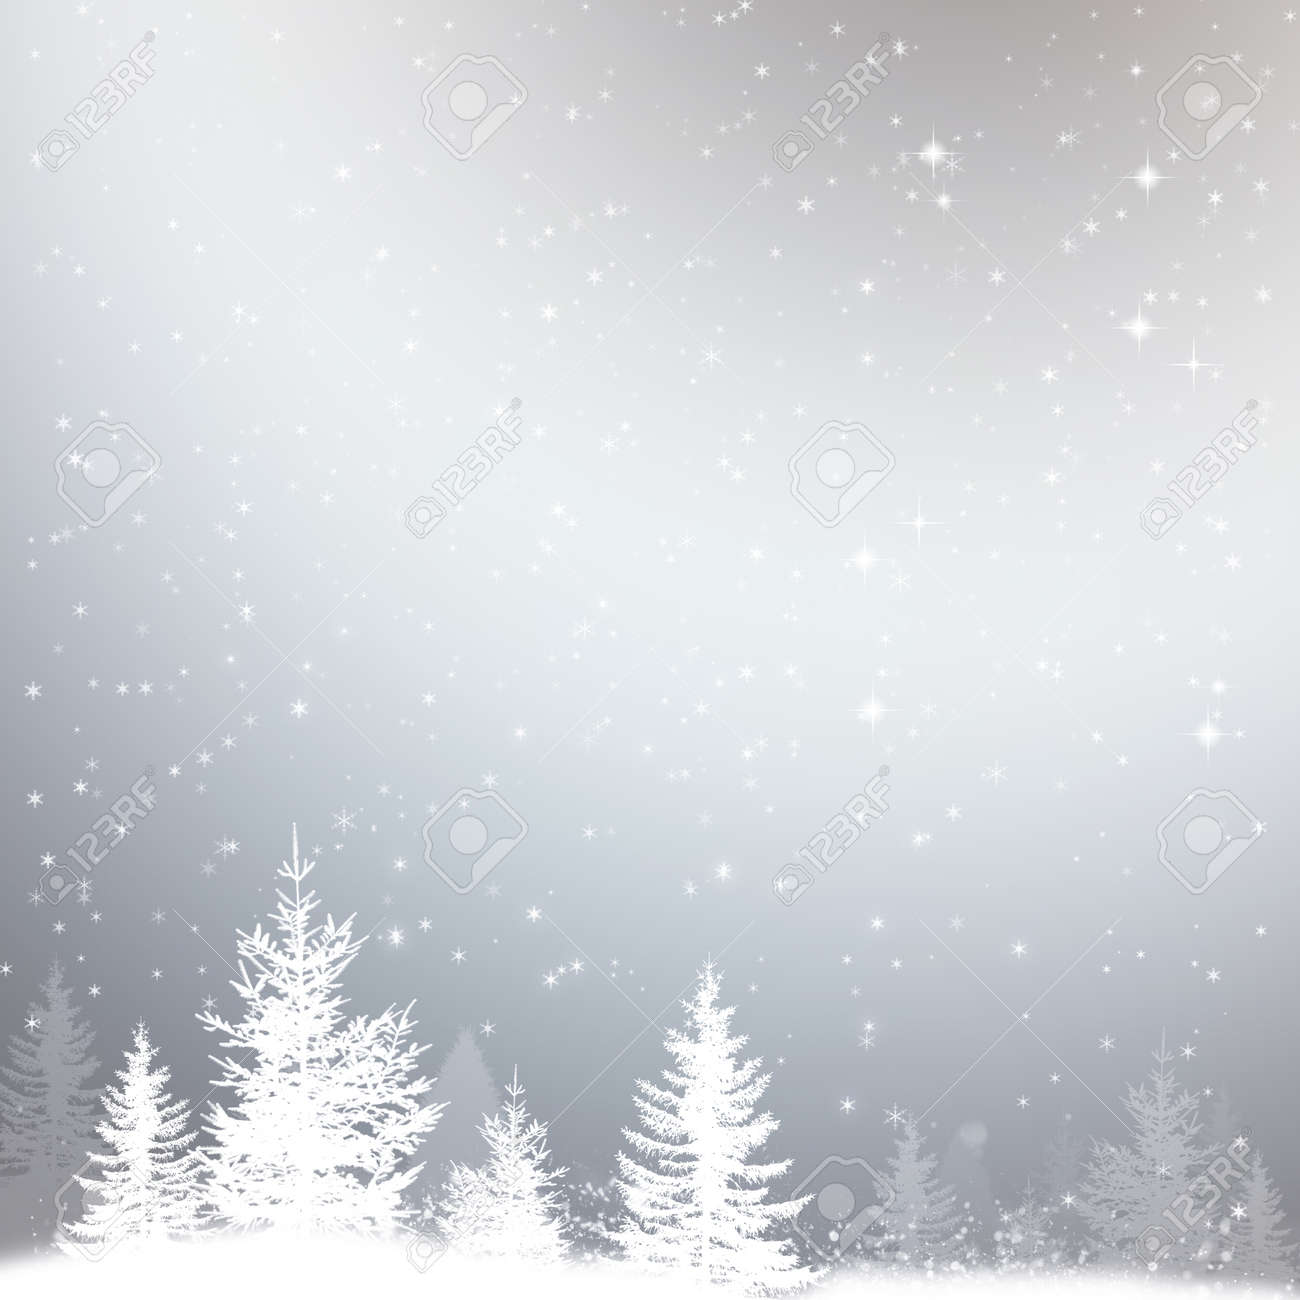 Winter Snow Christmas Background With Stars And Forest Stock Photo ...